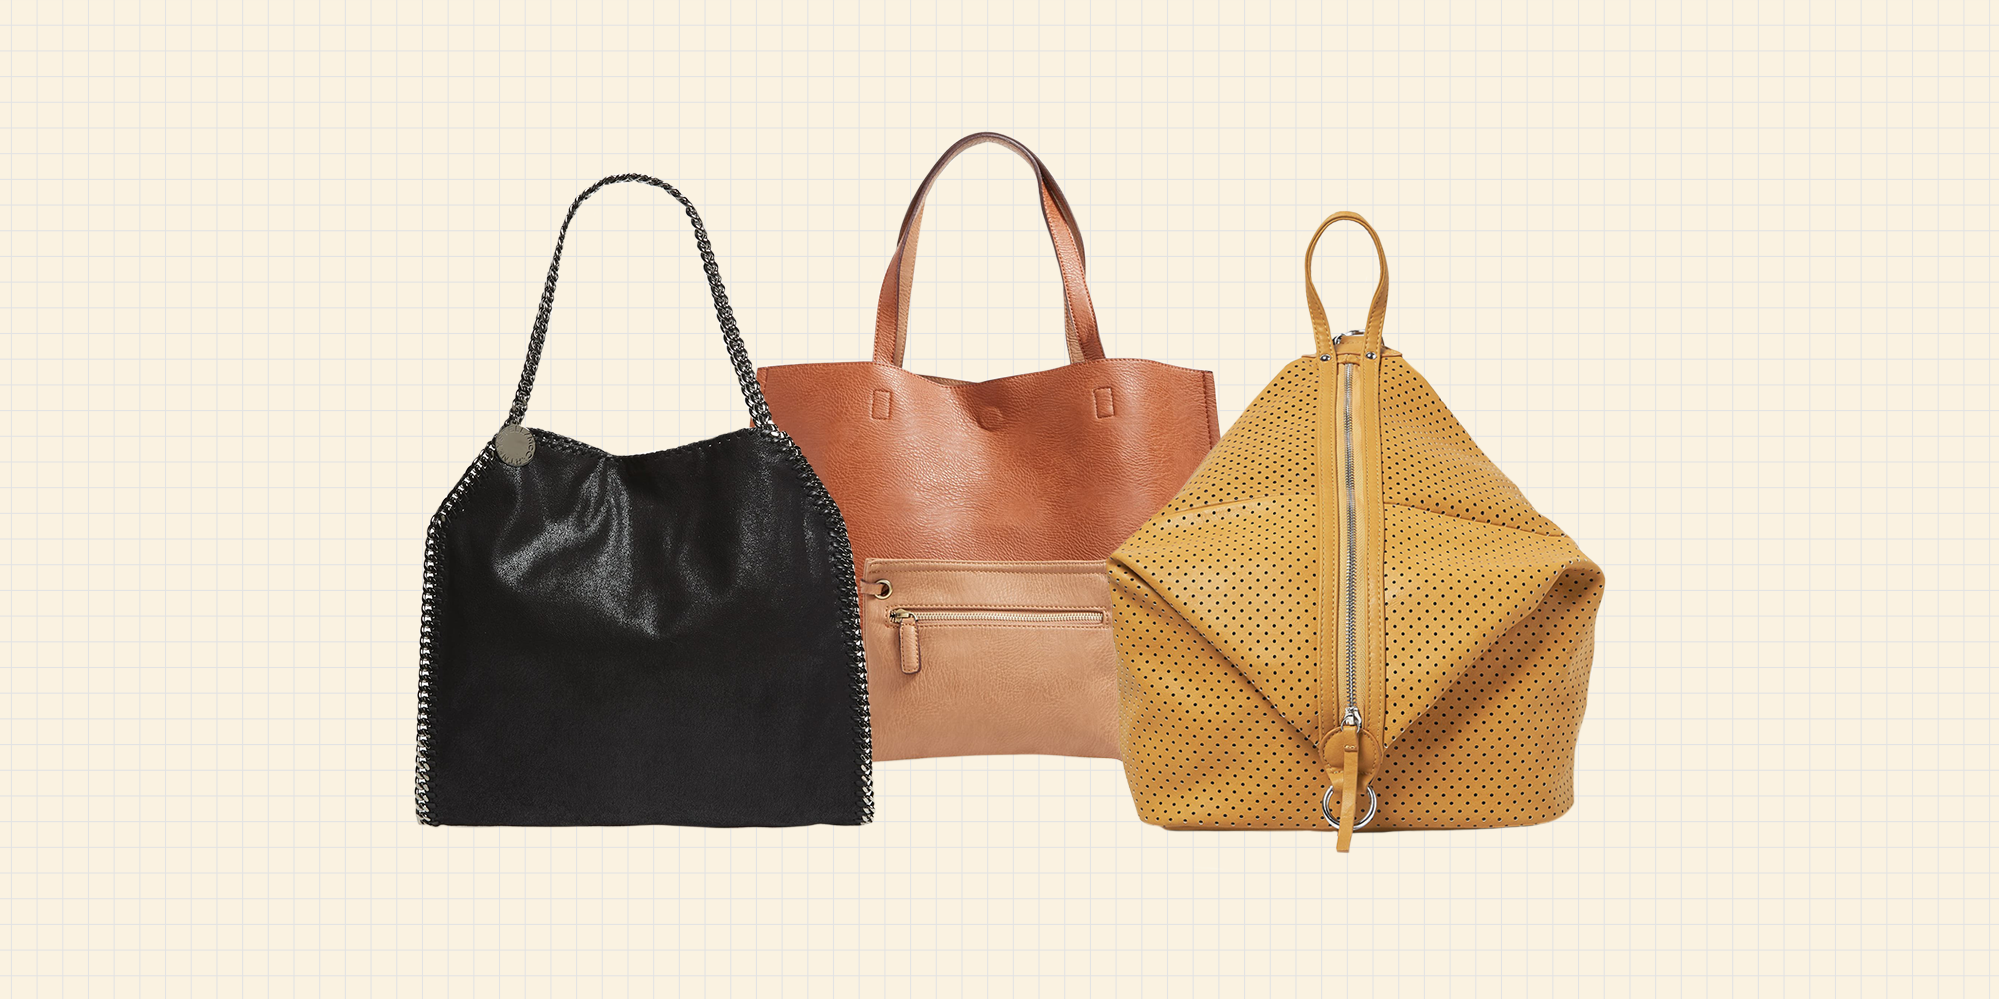 These Chic Vegan Leather Bags Are My New Obsession